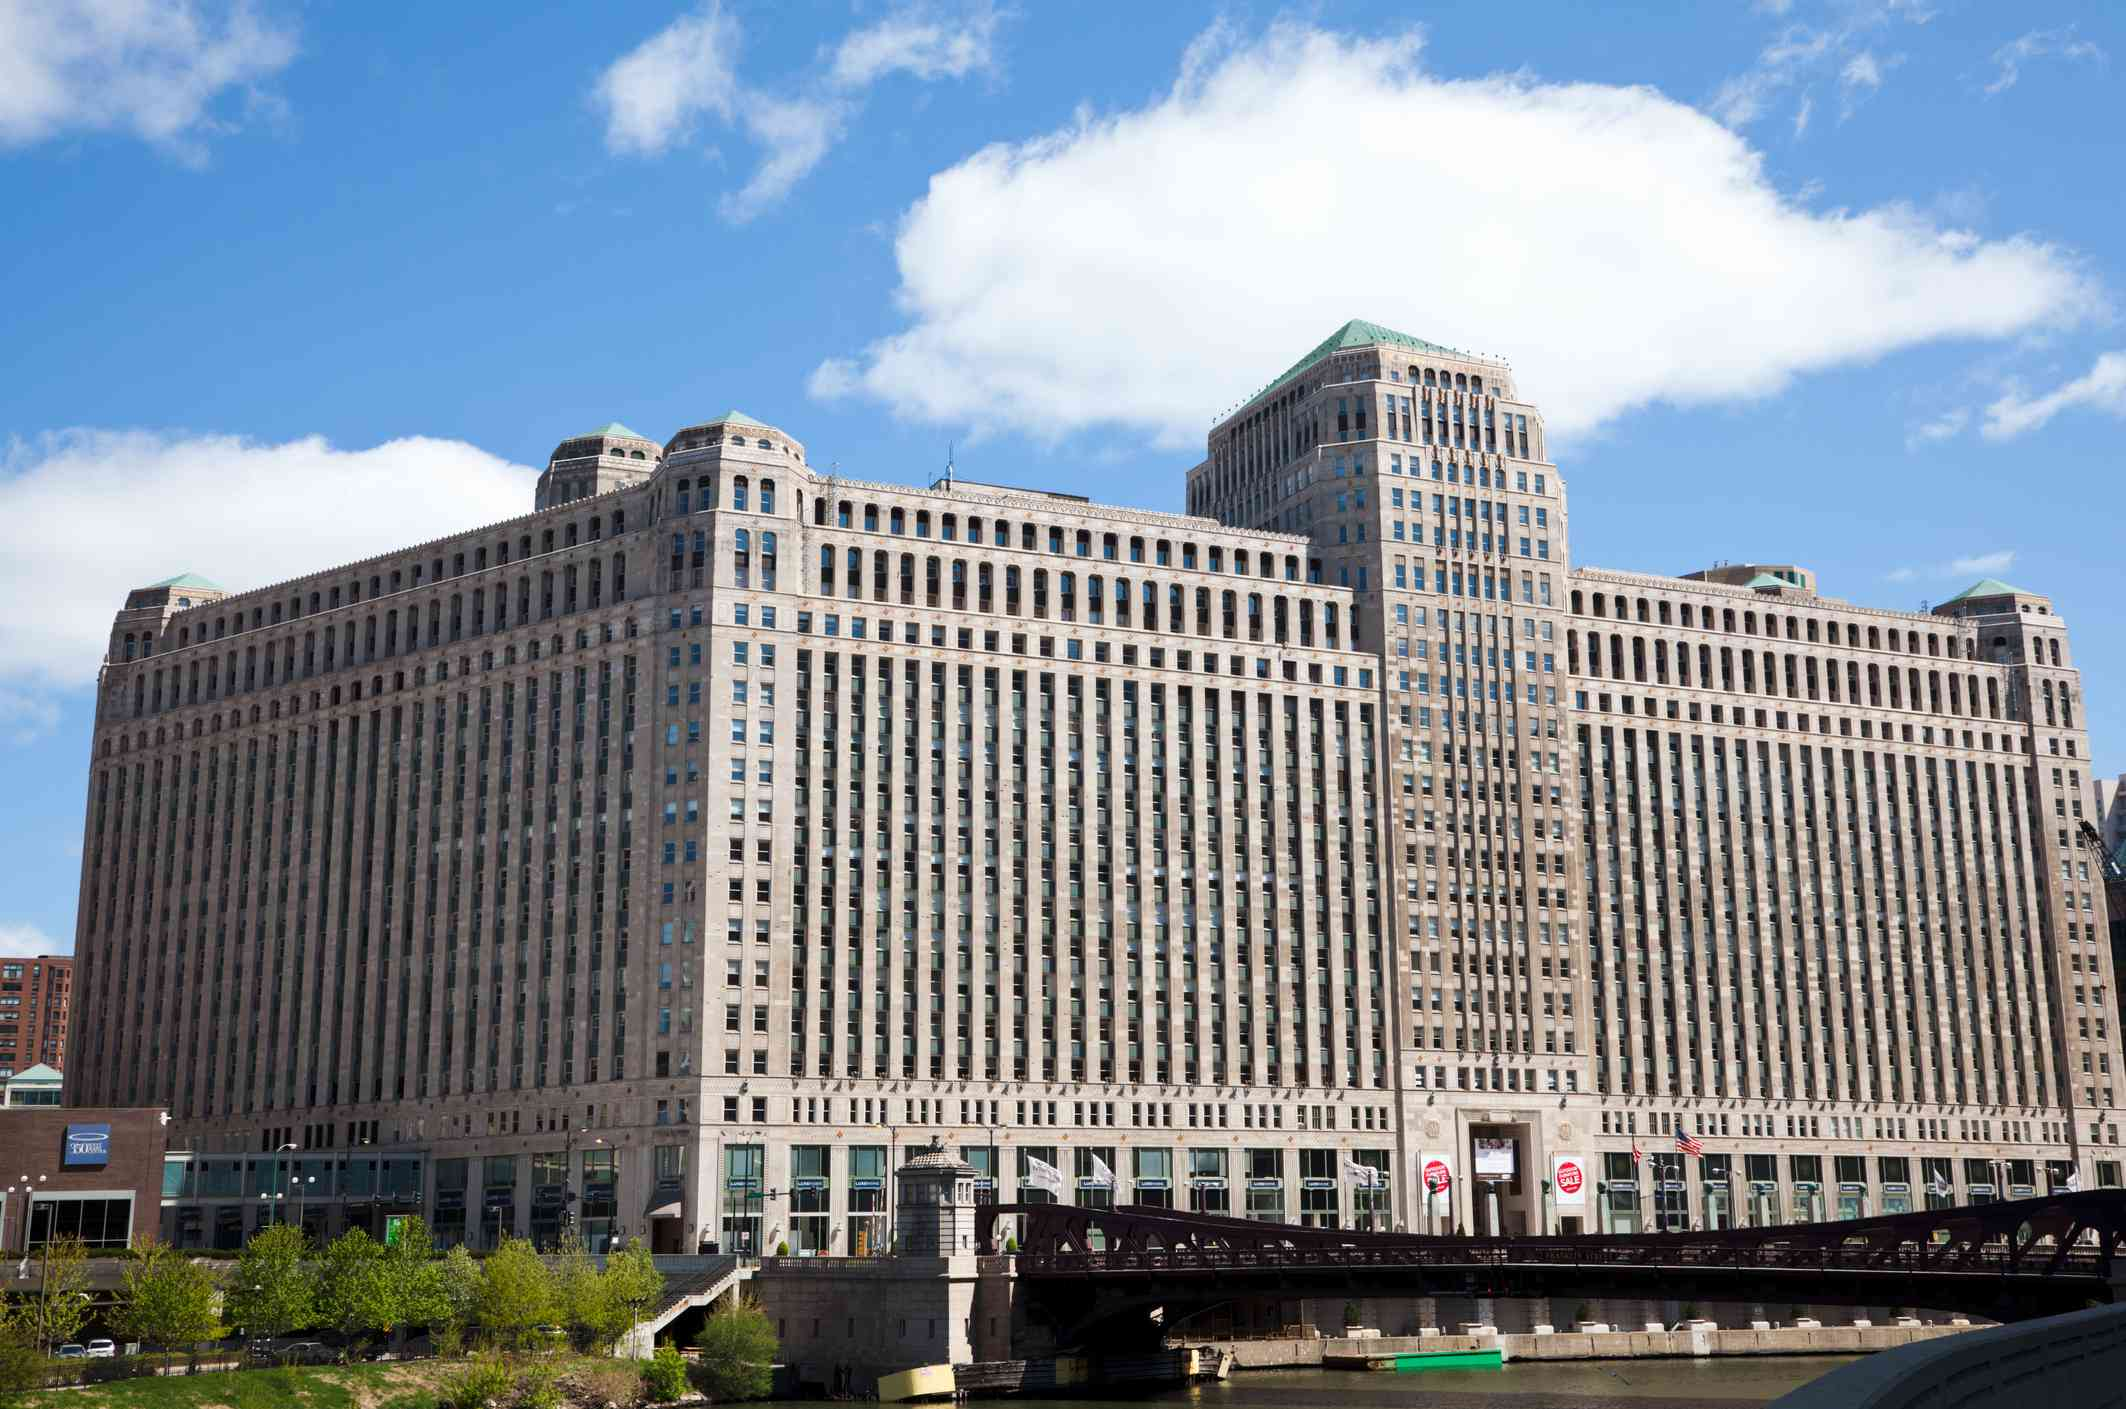 Merchandise Mart building in downtown, located by Chicago River. Photographed here from southwest side.